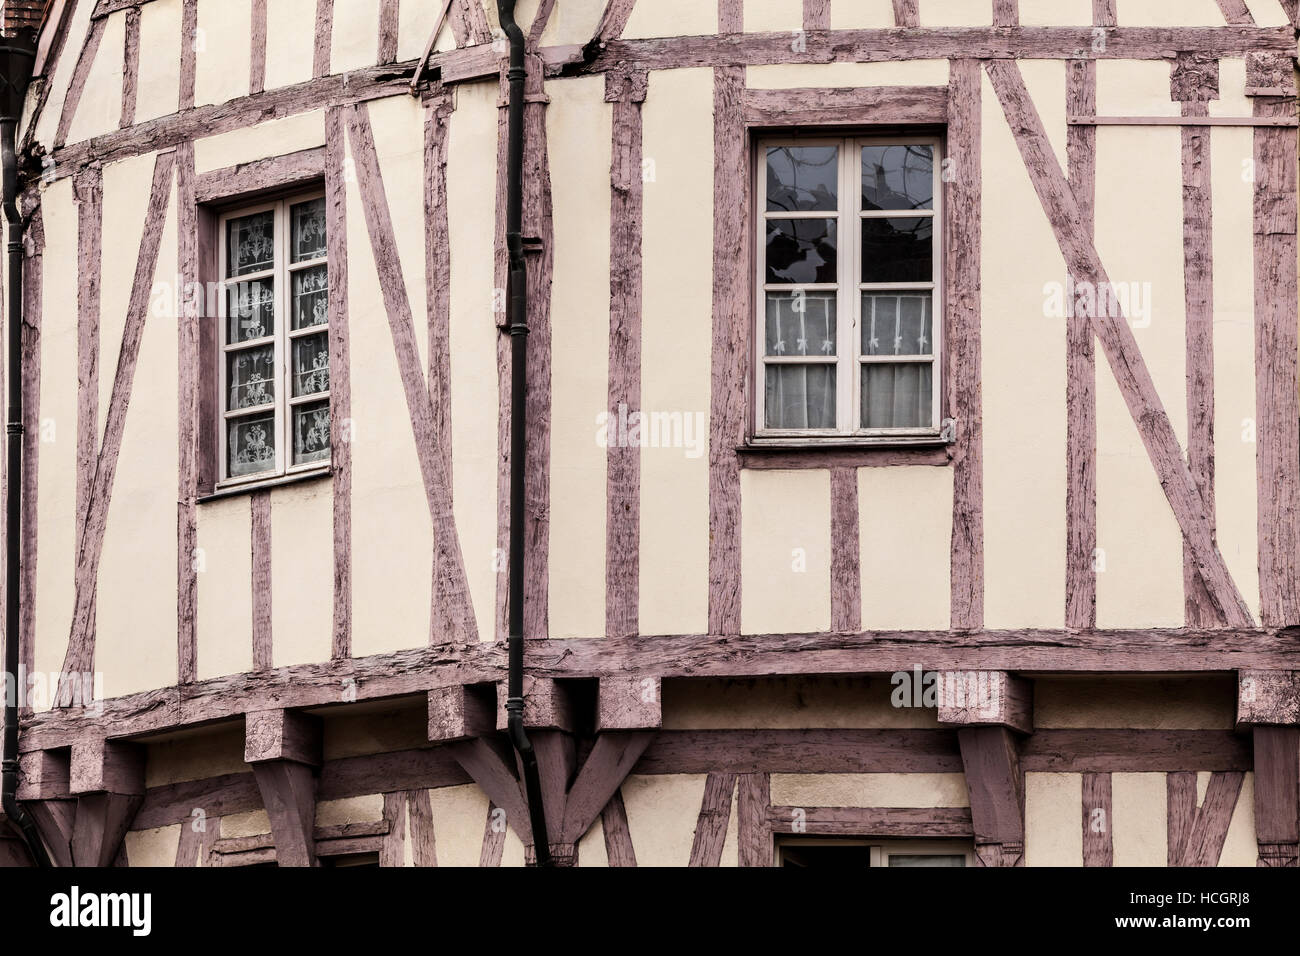 An old half timbered house in old Dijon. - Stock Image